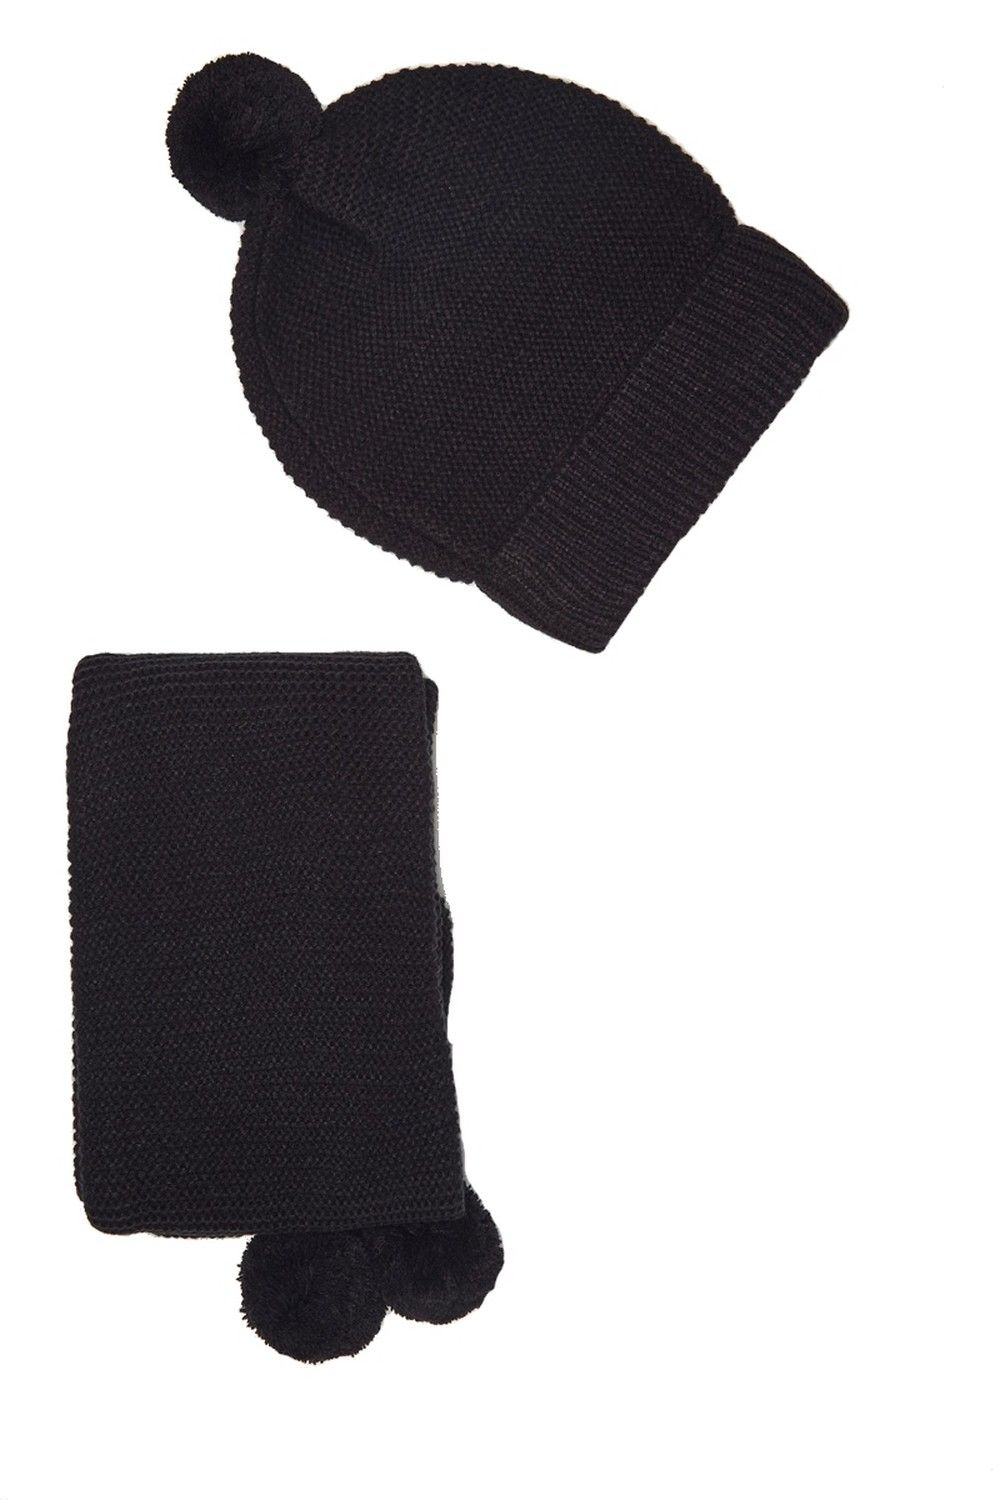 William De Faye 4 Yarn 155x16cm Scarf & Beanie in Black